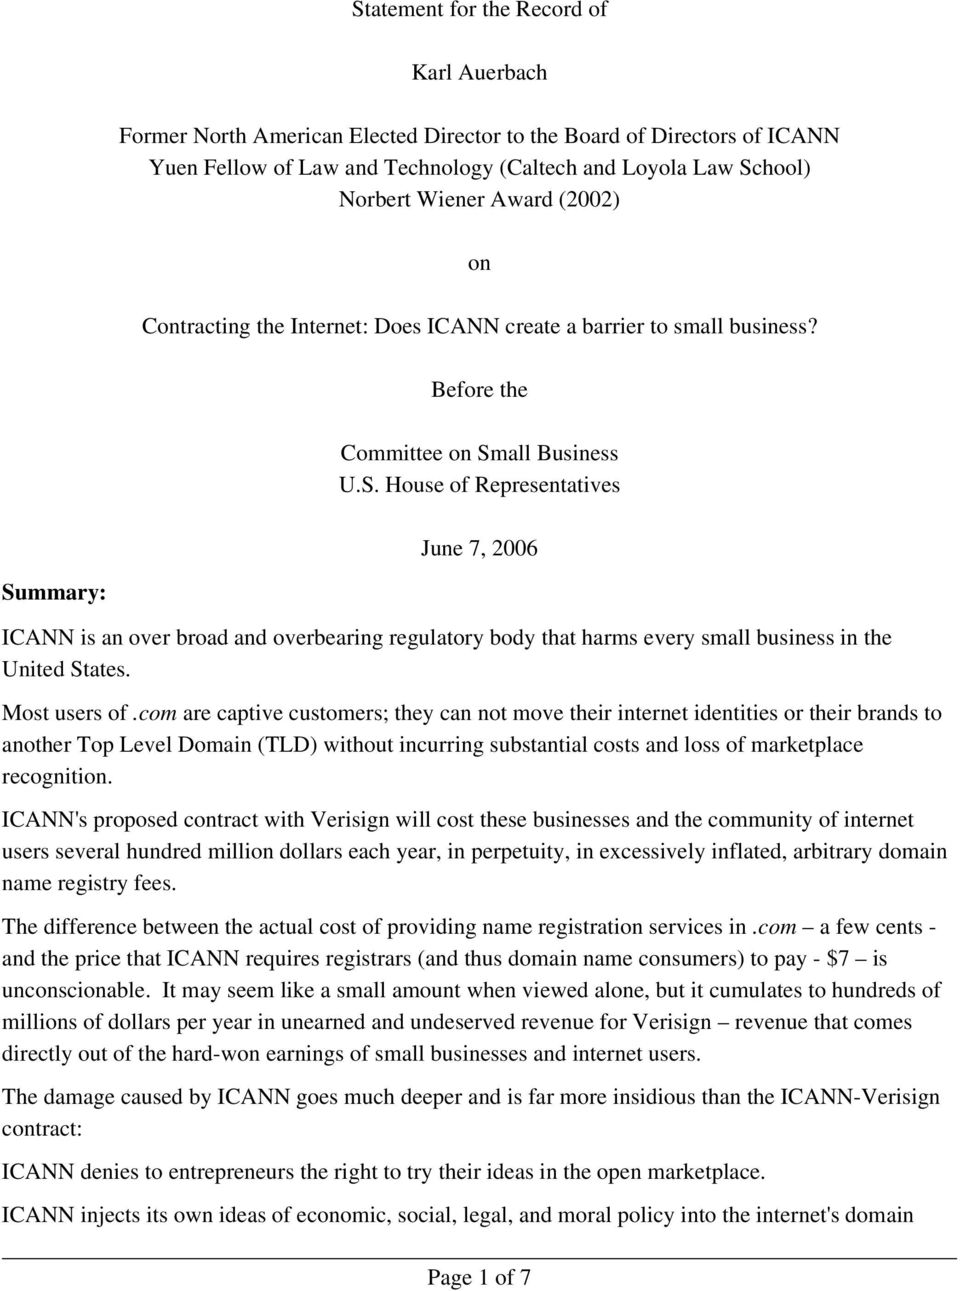 all Business U.S. House of Representatives June 7, 2006 Summary: ICANN is an over broad and overbearing regulatory body that harms every small business in the United States. Most users of.